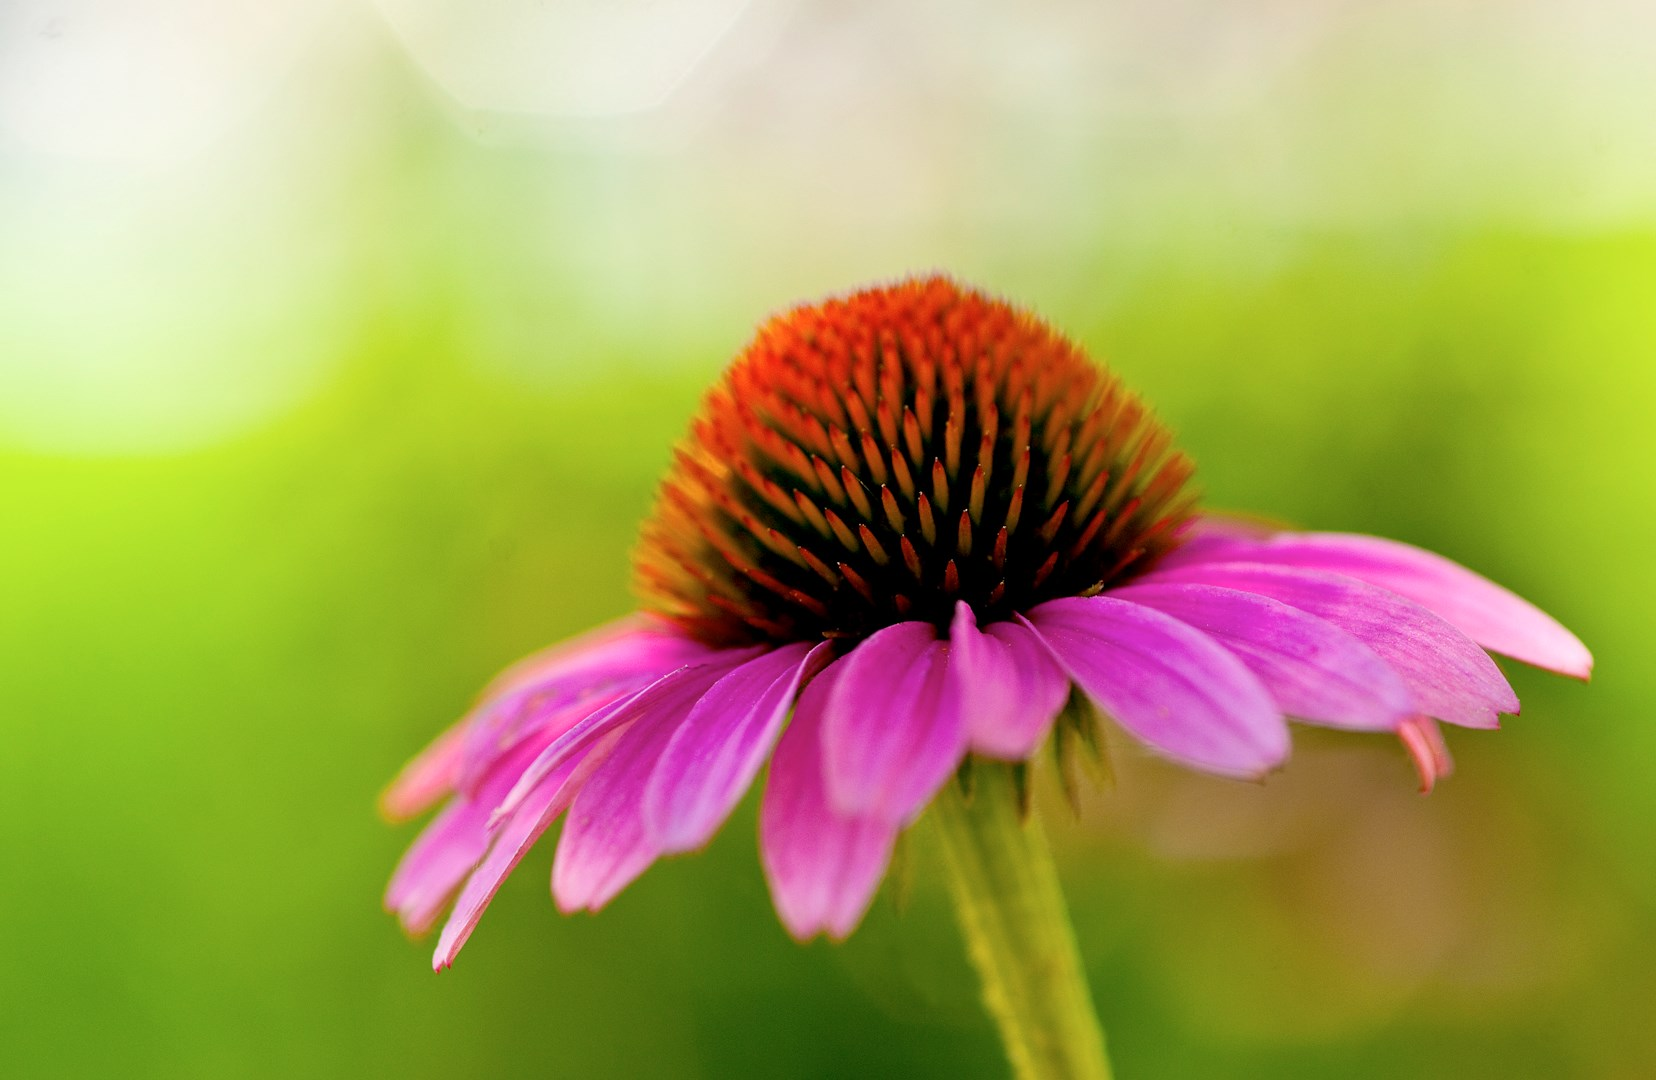 horiz_color of coneflower